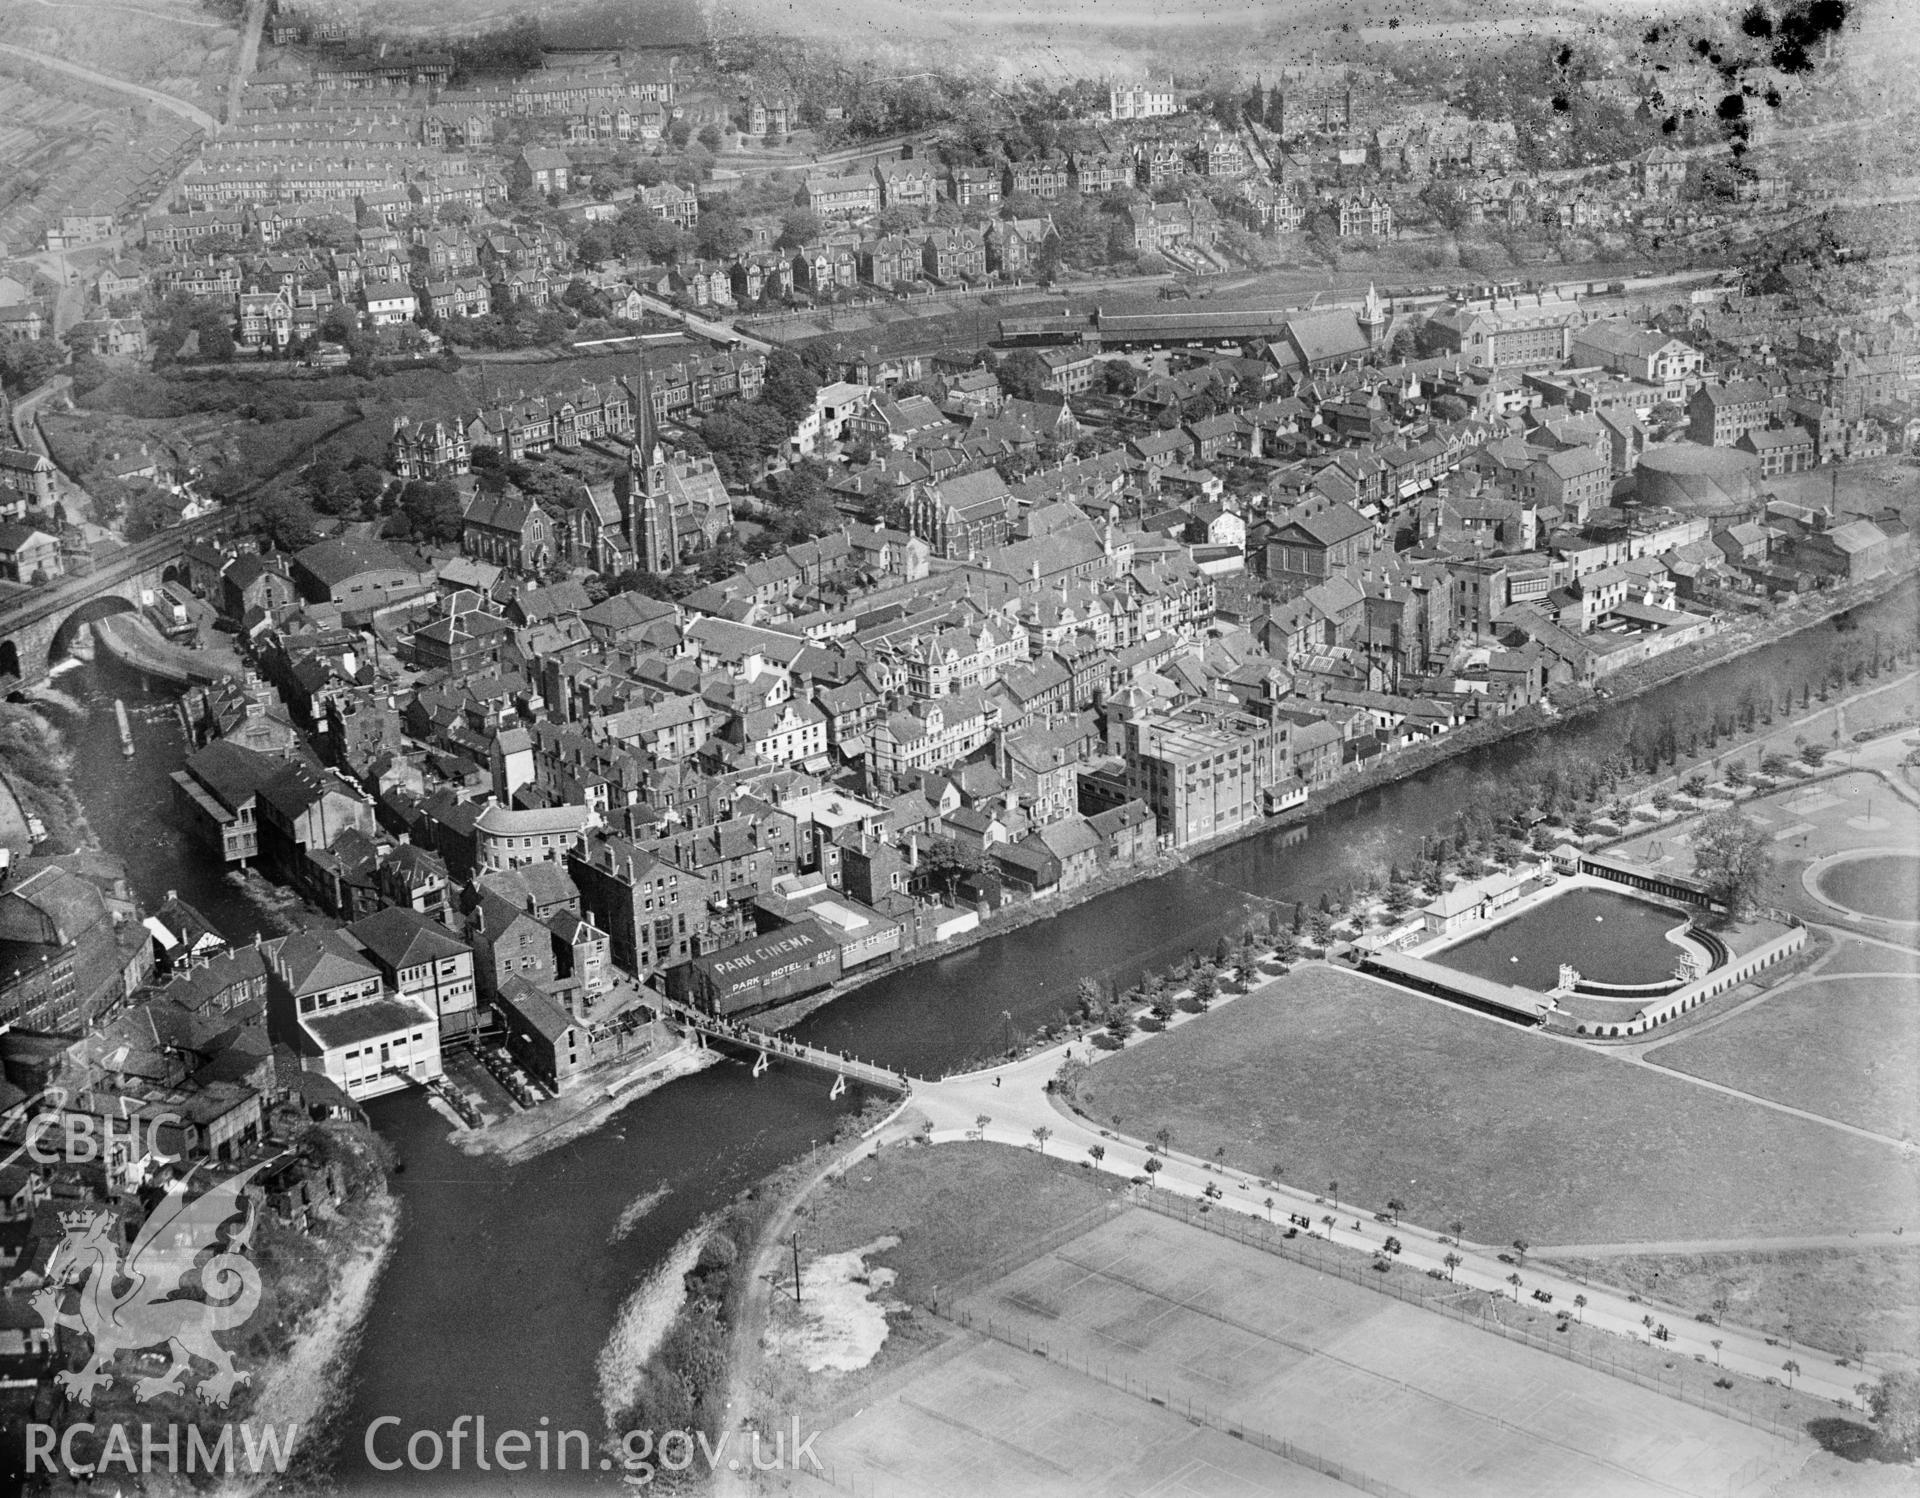 View of Pontypridd showing Ynysangharad Park and swimming pool, oblique aerial view. 5?x4? black and white glass plate negative.